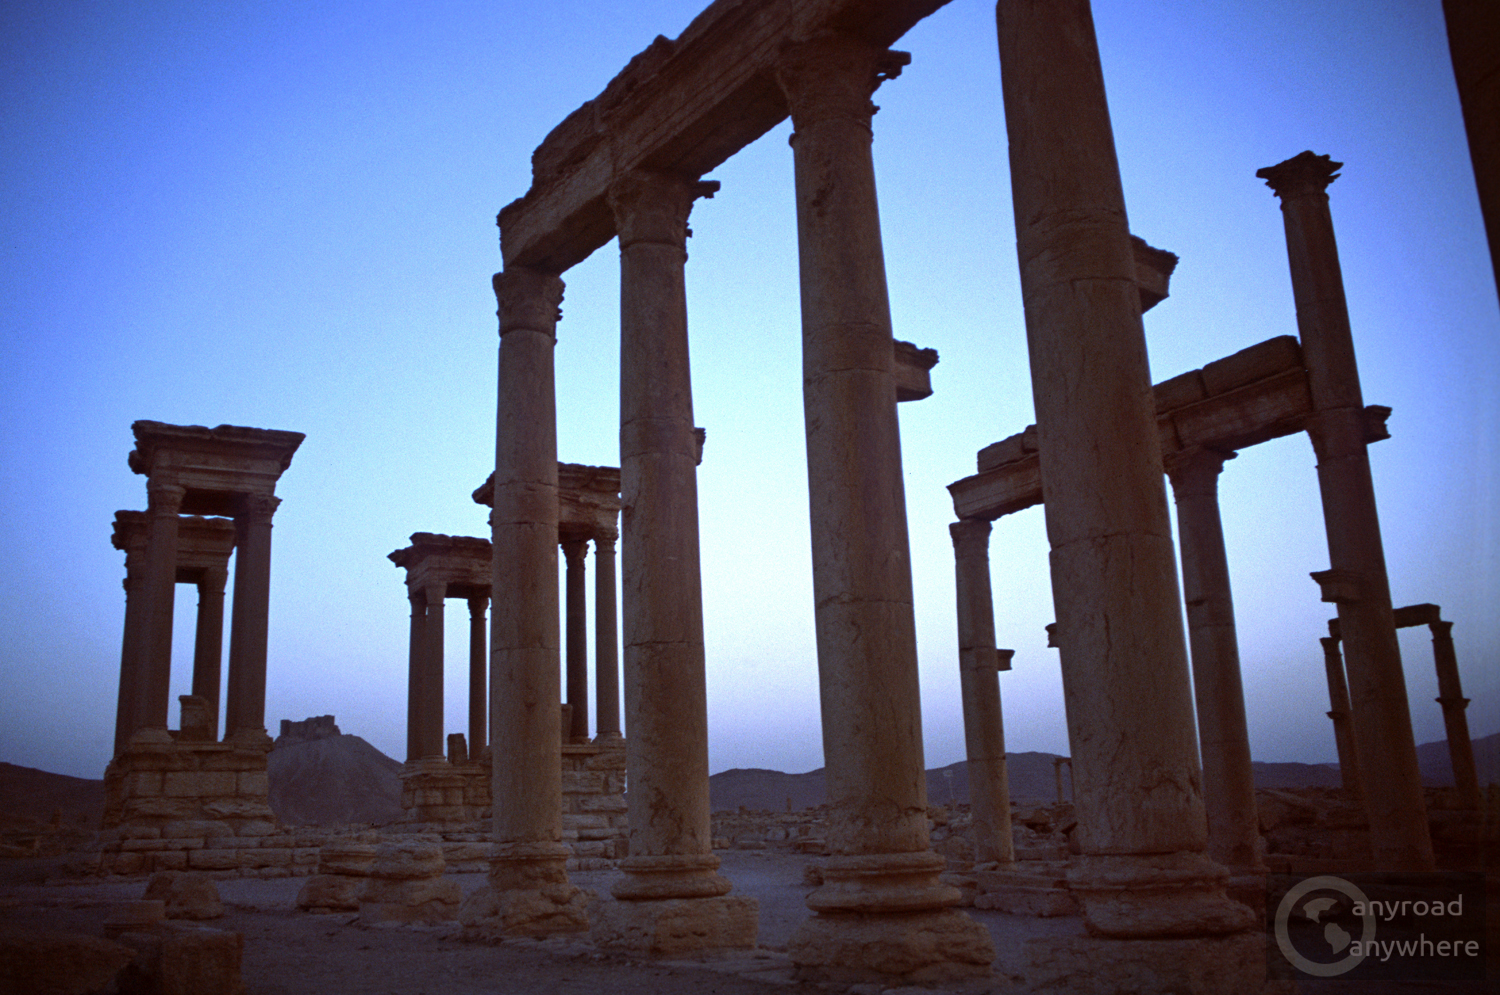 The slender columns of Palmyra in the light of the setting sun